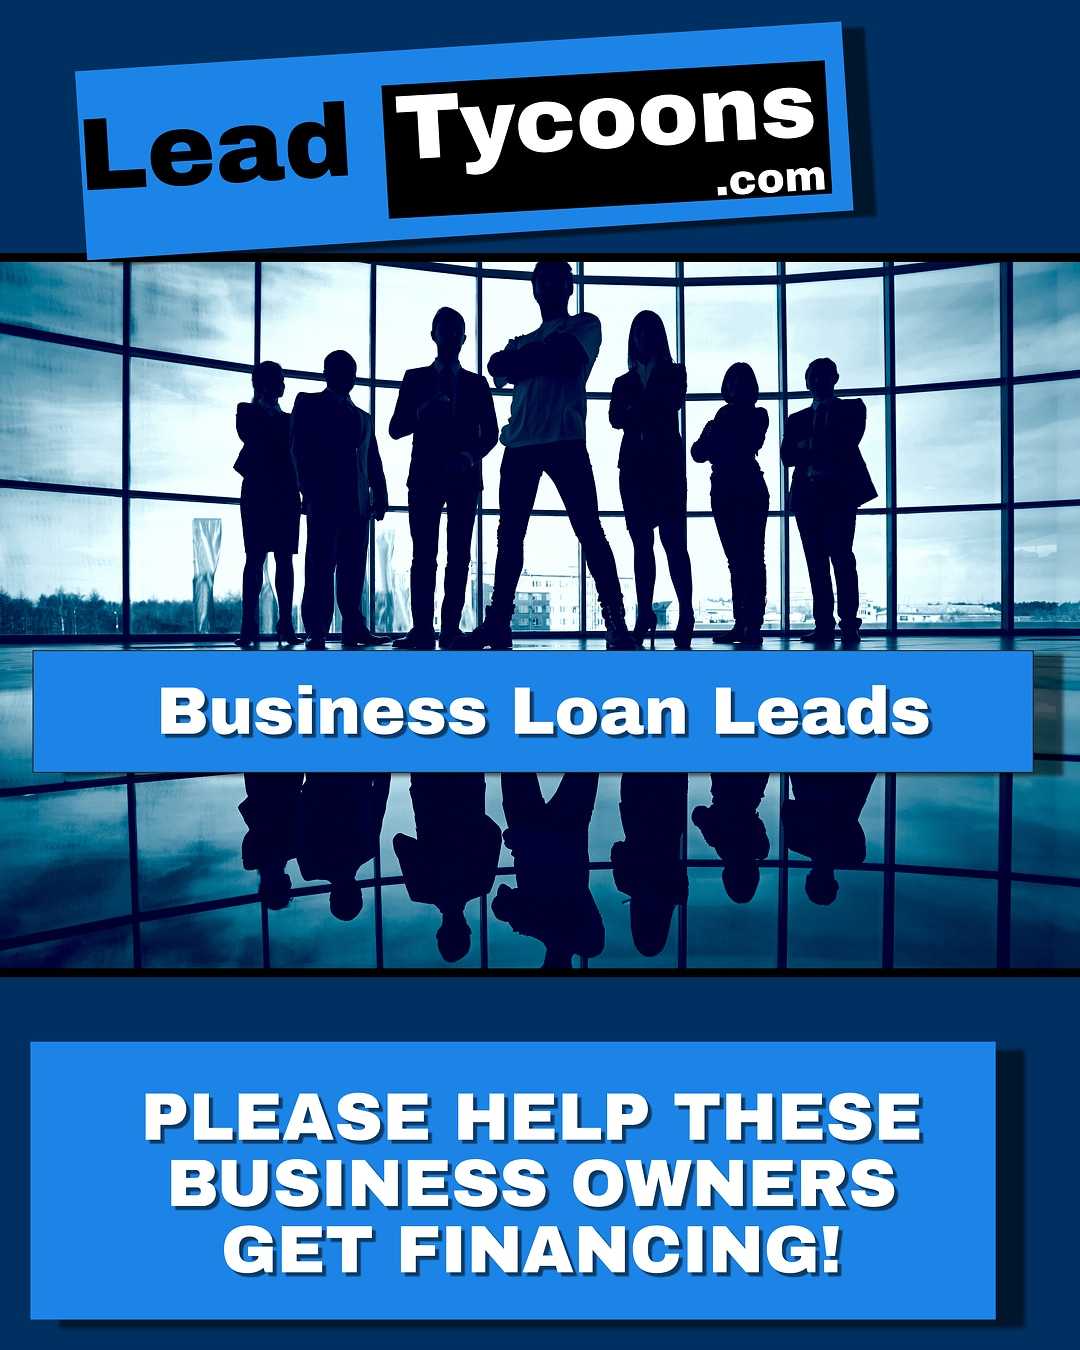 Small-Business-Loan-Leads-LeadTycoons